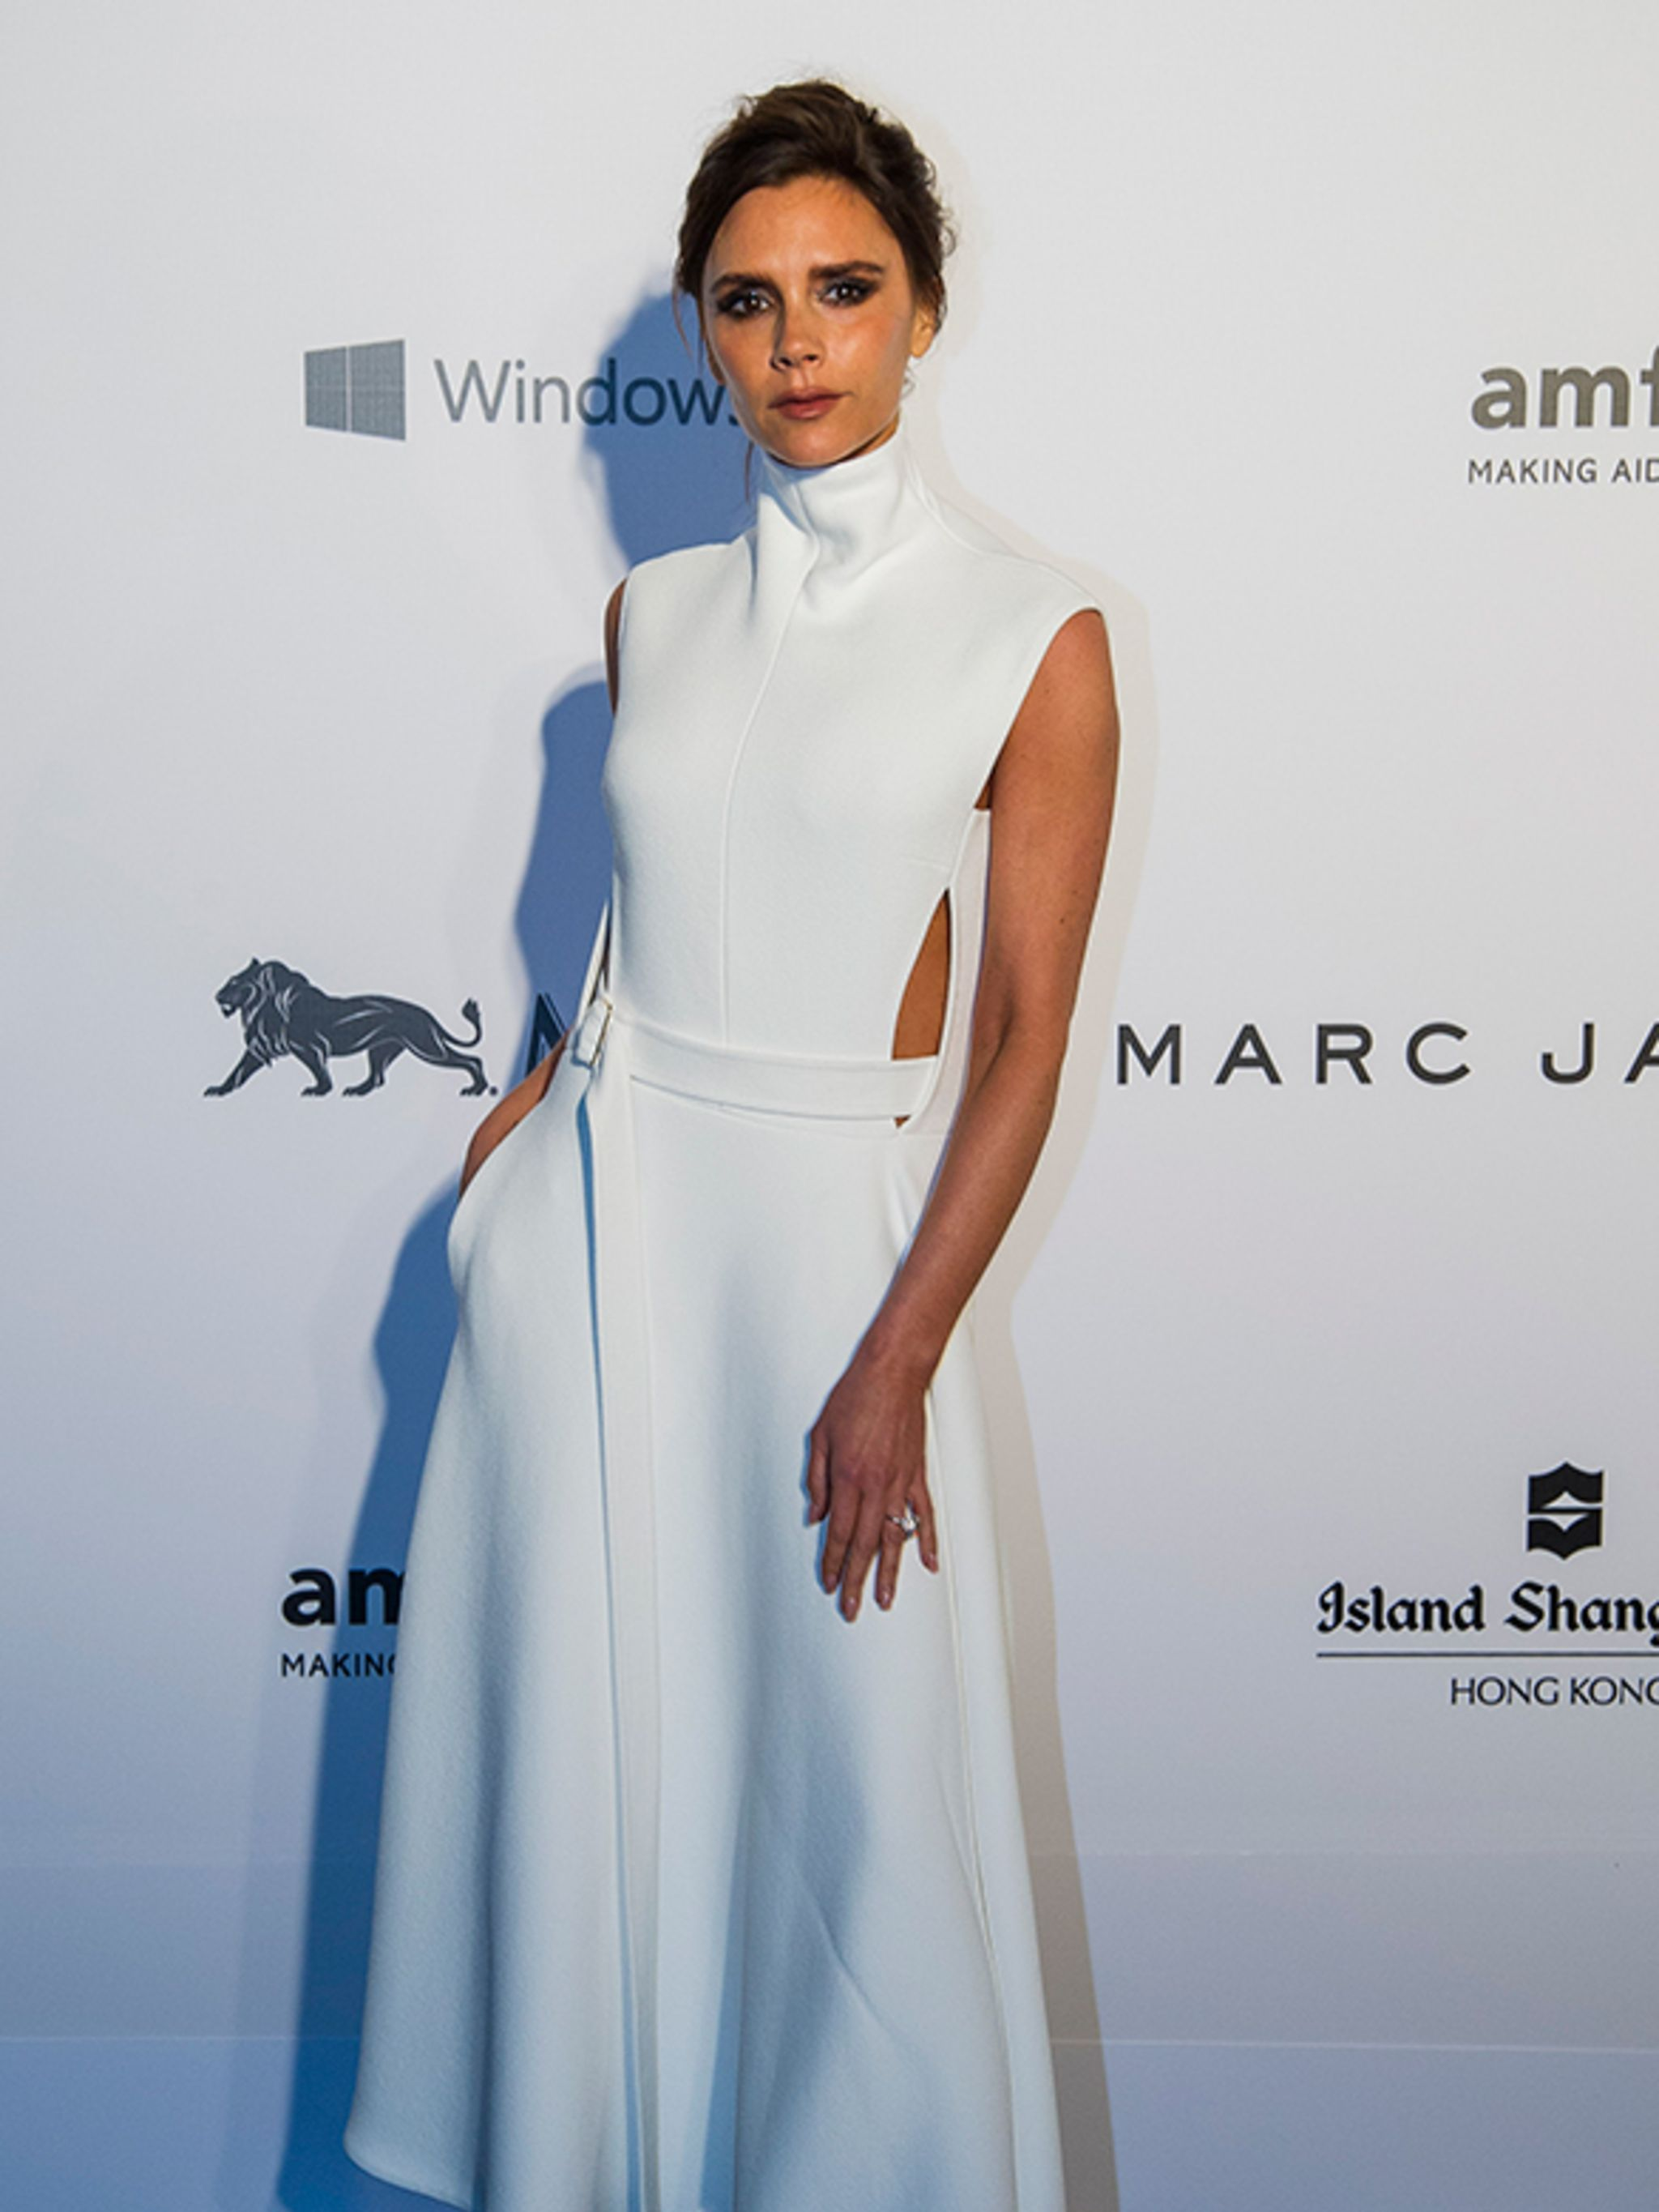 Victoria Beckham s Best Red Carpet And Fashion Moments Of All Time deae8a9d2